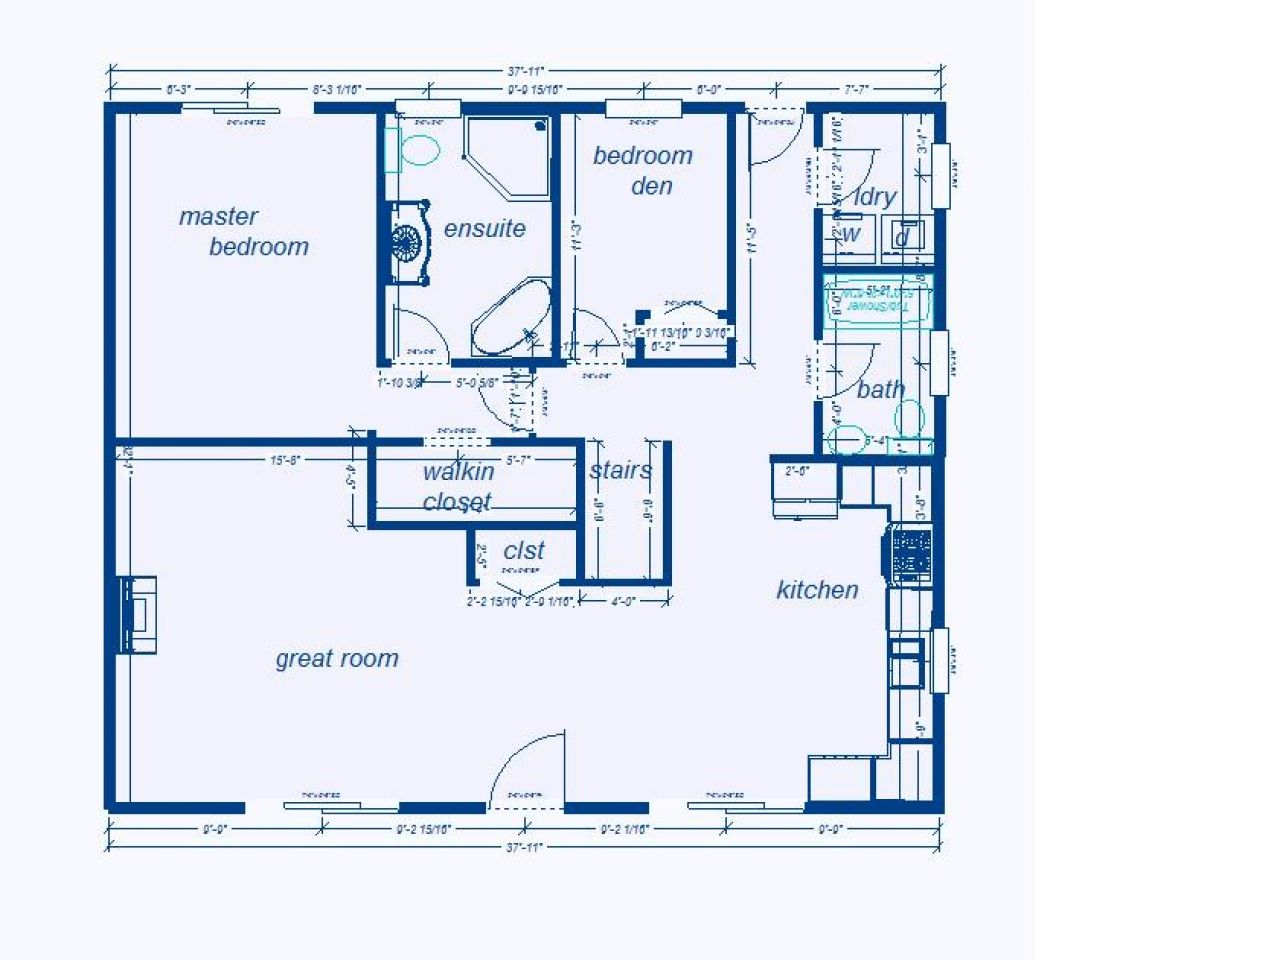 Foundation plans for houses blueprint house free in 12 top for House plan printing